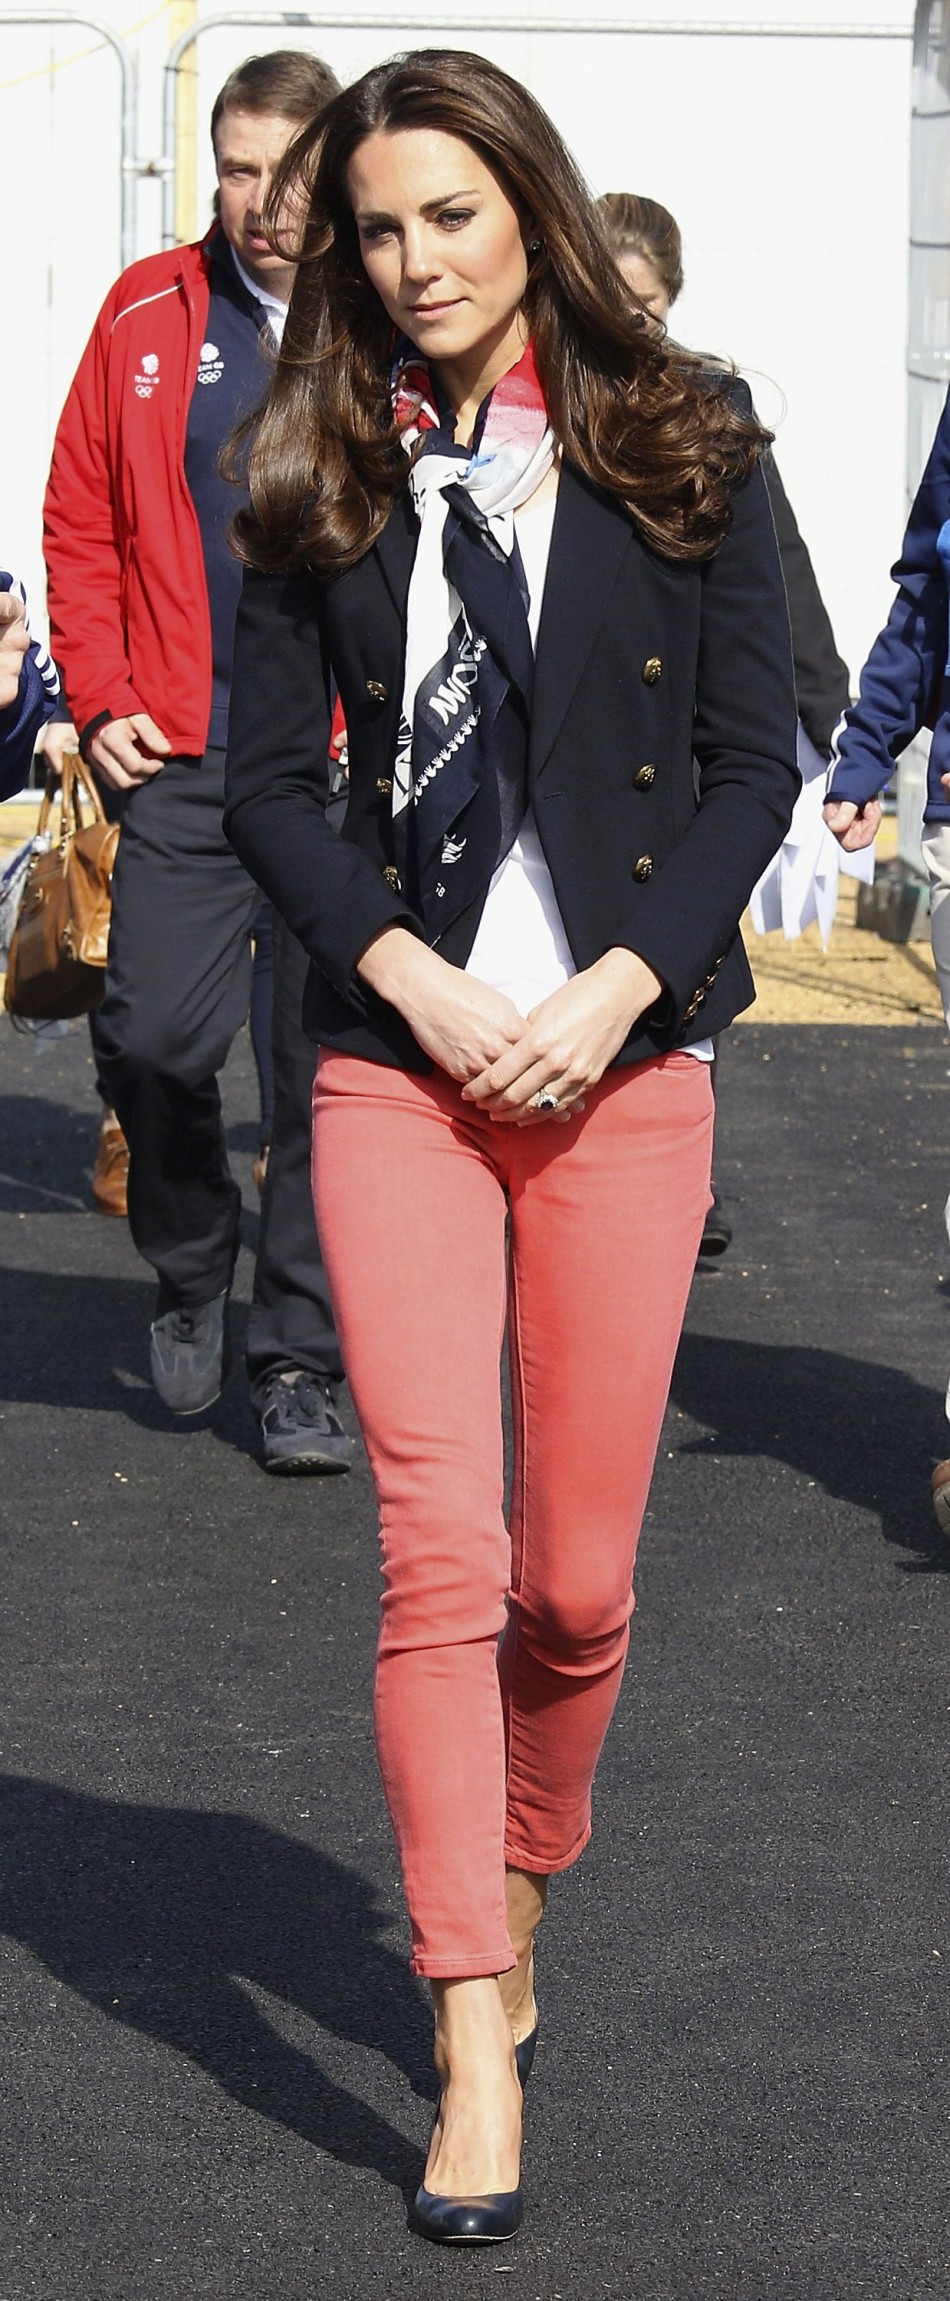 Britain's Catherine, Duchess of Cambridge wears the Team GB official supporter's scarf for London 2012, during her visit to the Olympic Park in London